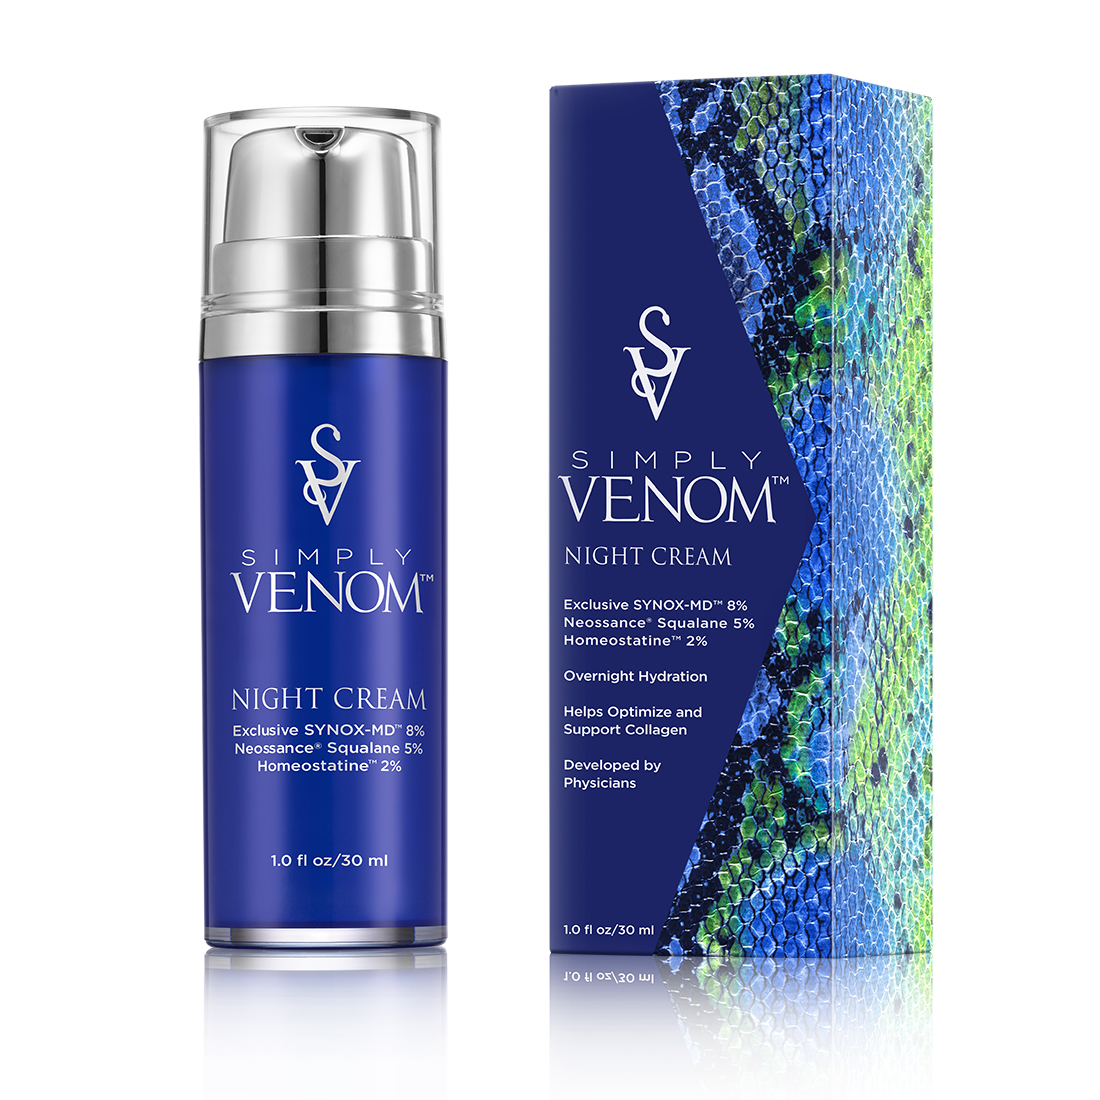 Image of Simply Venom Night Cream